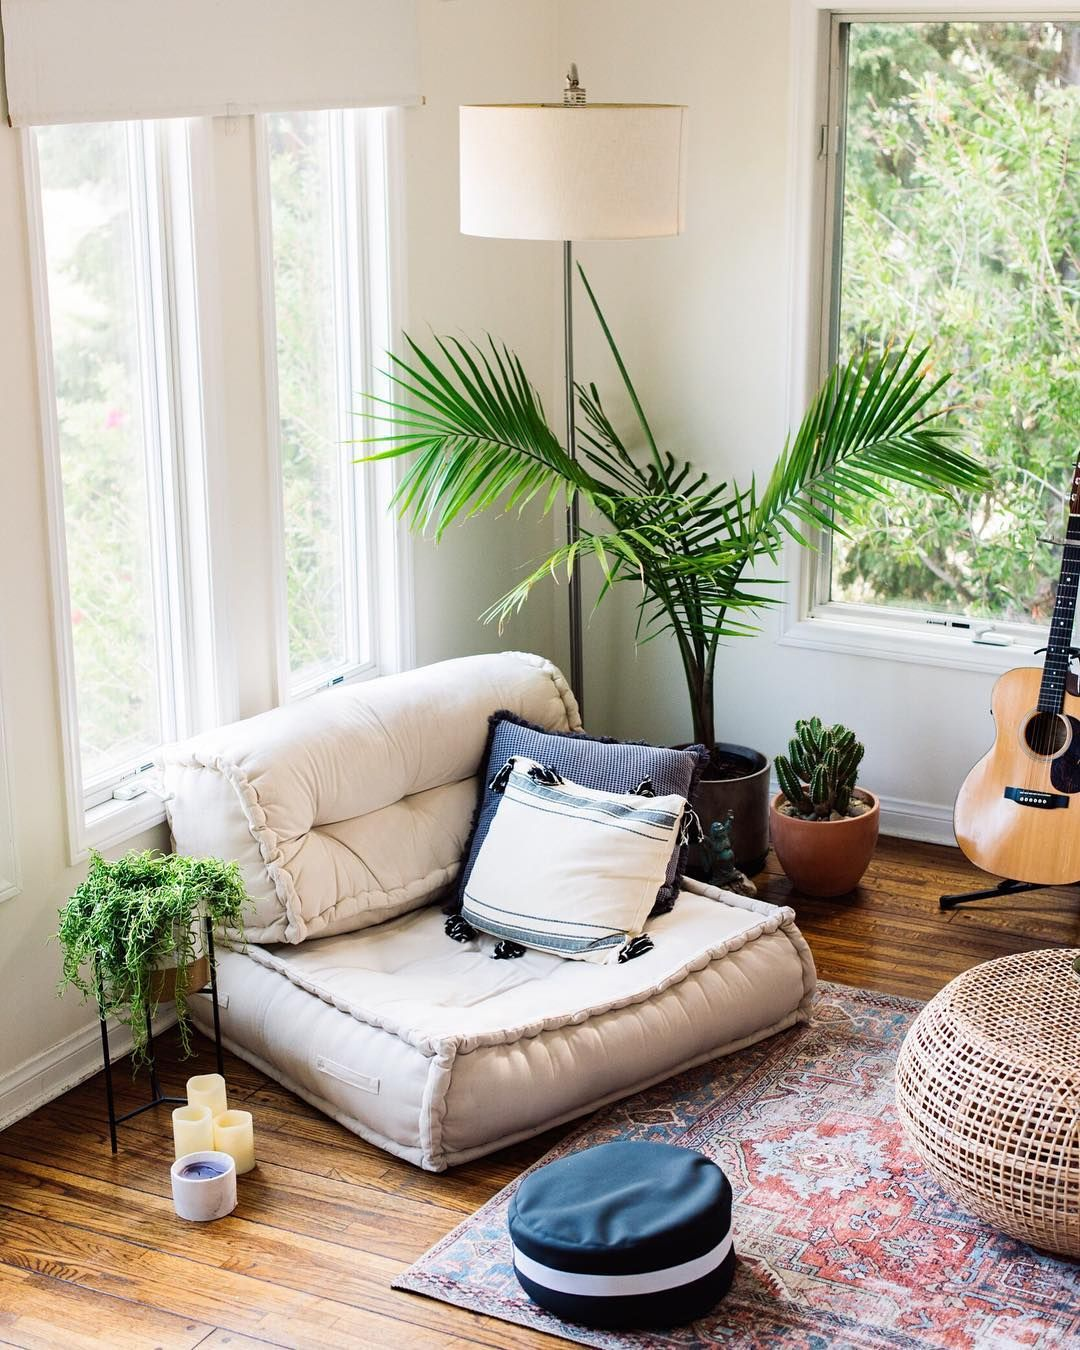 Urban Outfitters On Instagram You Don T Want To Miss This All Urbanoutfittershome Furniture Is Up To 30 Off Online Right Now Uoho Home Yoga Room Chill Room Meditation Room Decor